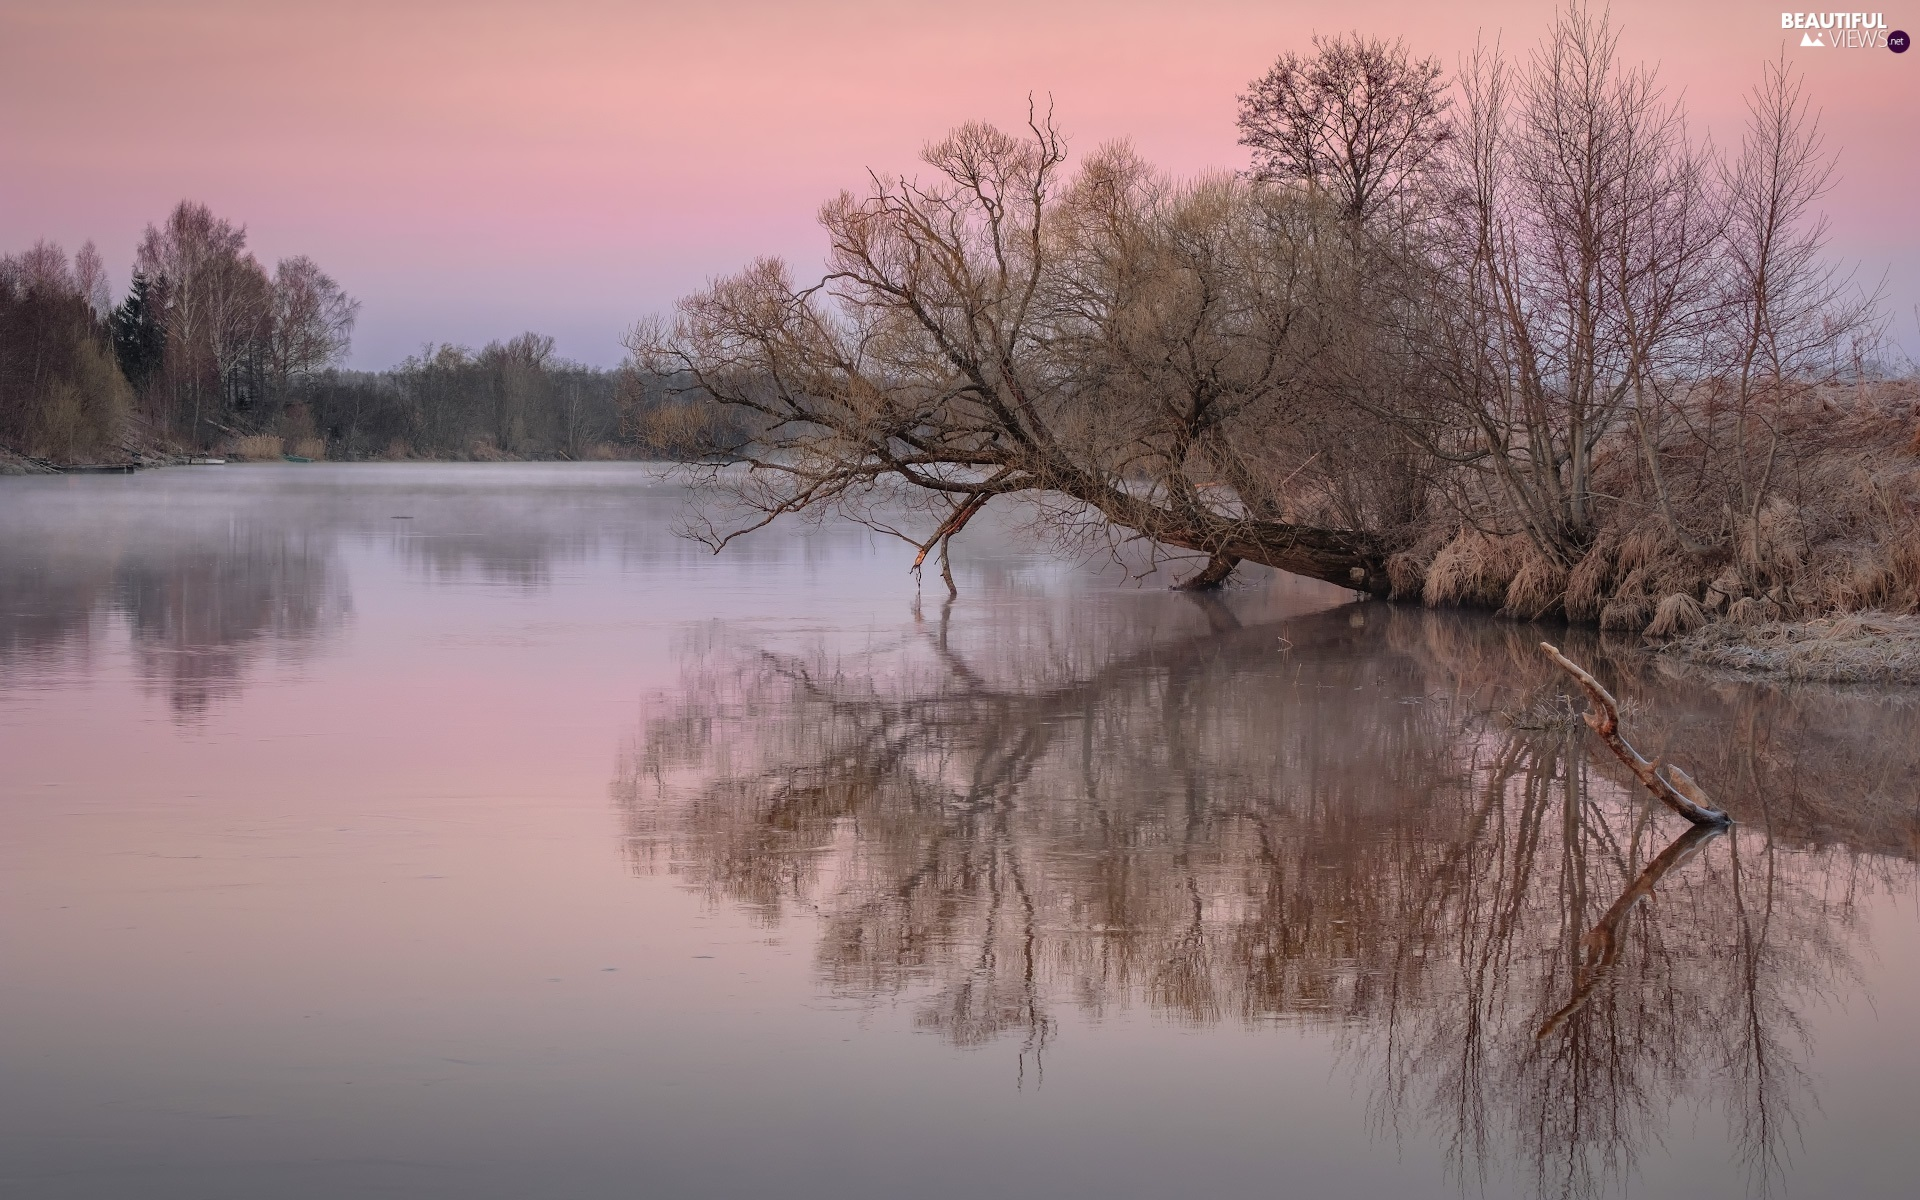 trees, dawn, Latgale, inclined, Dubna River, reflection, Latvia